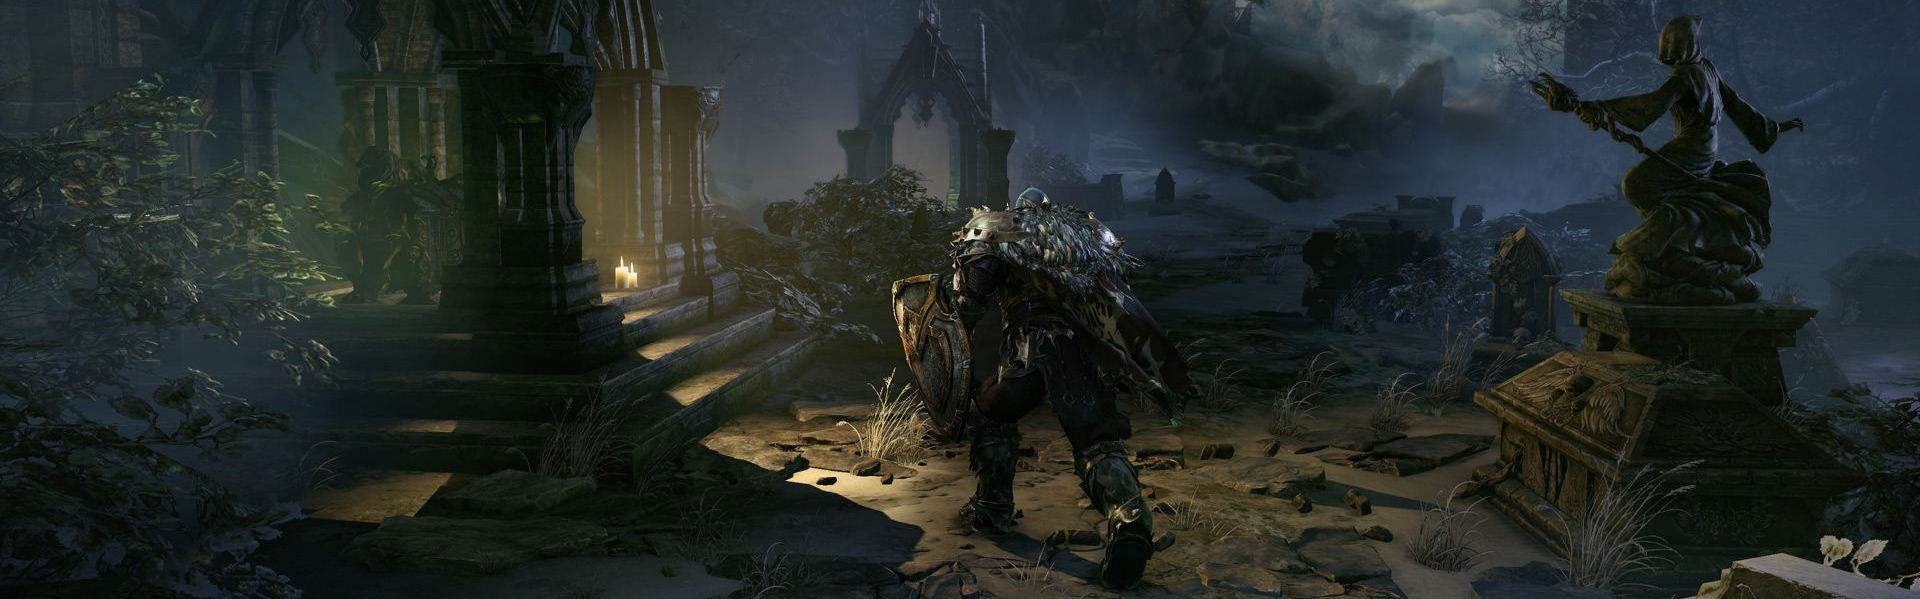 Lords of the Fallen Digital Deluxe Edition + 2 DLC's Steam Key GLOBAL